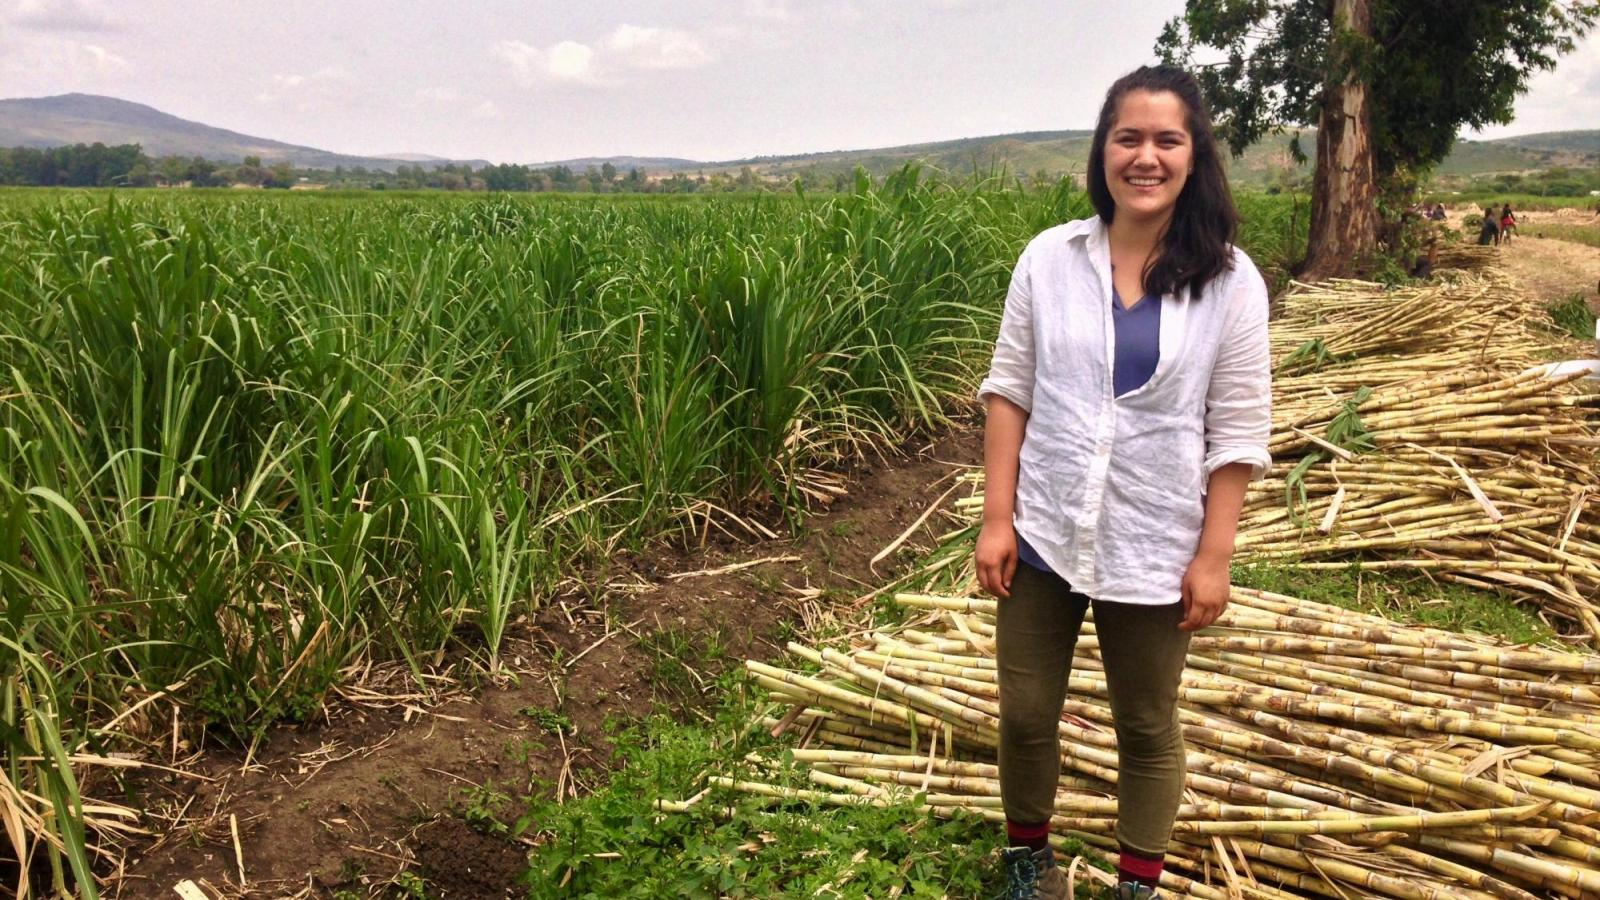 Katie Chambers standing in a field with cut bamboo.